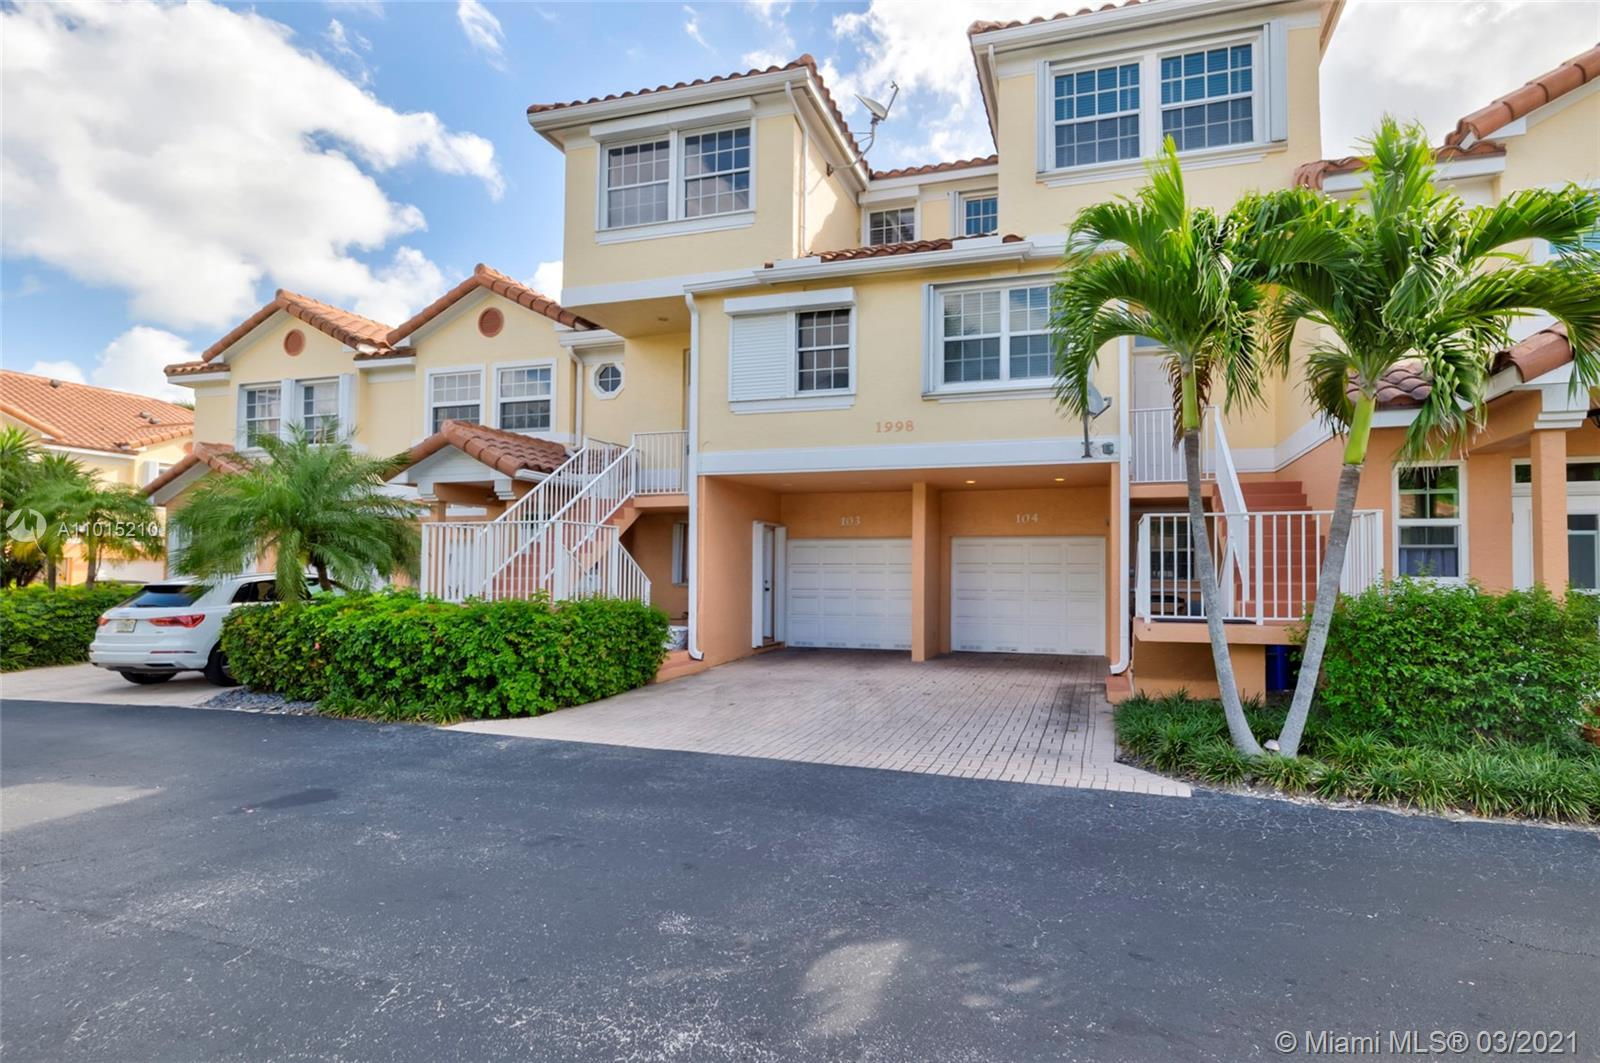 Very spacious 3 bedroom 3 1/2 bath townhome, one block from the beach, and a 3-minute walk to downto